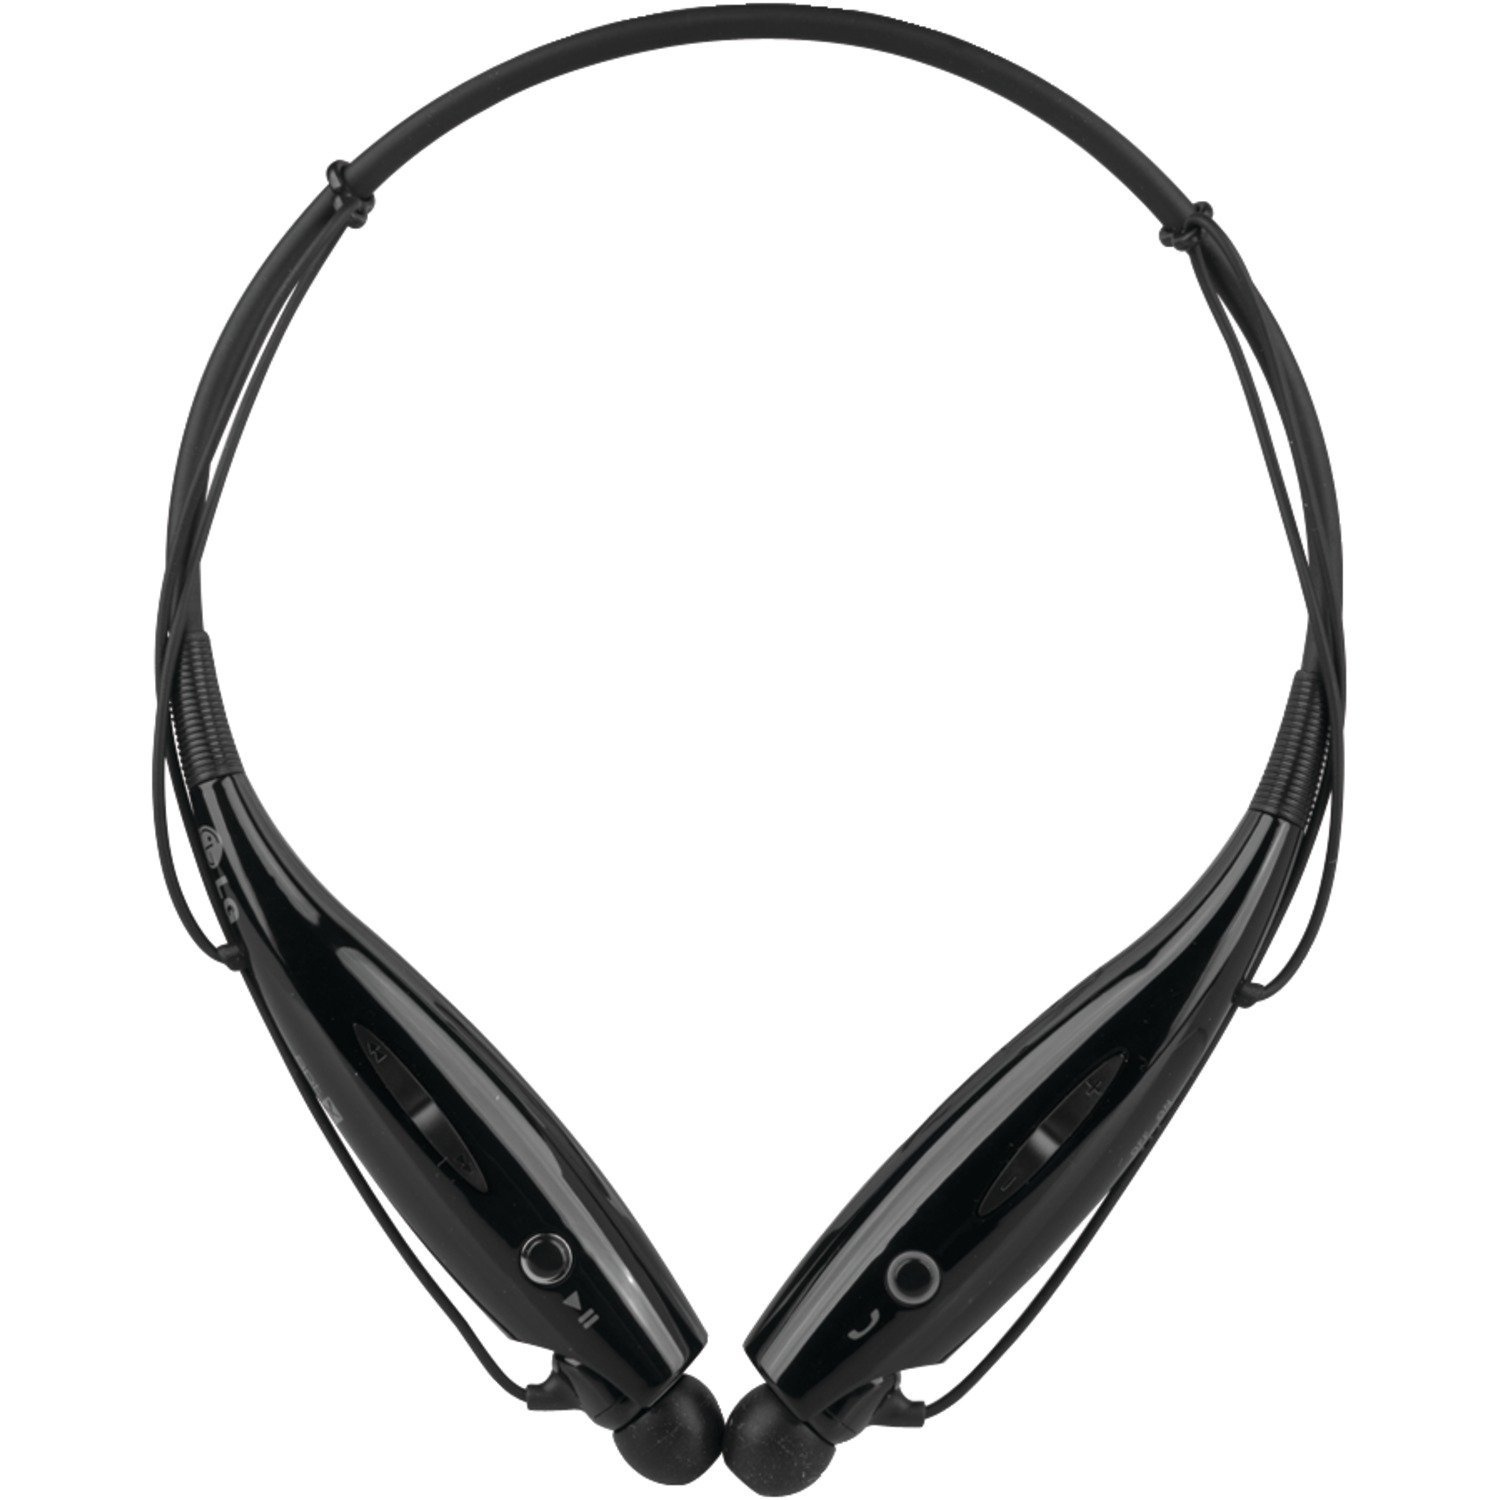 LG Tone Infinim Wireless Bluetooth Stereo Headset Image